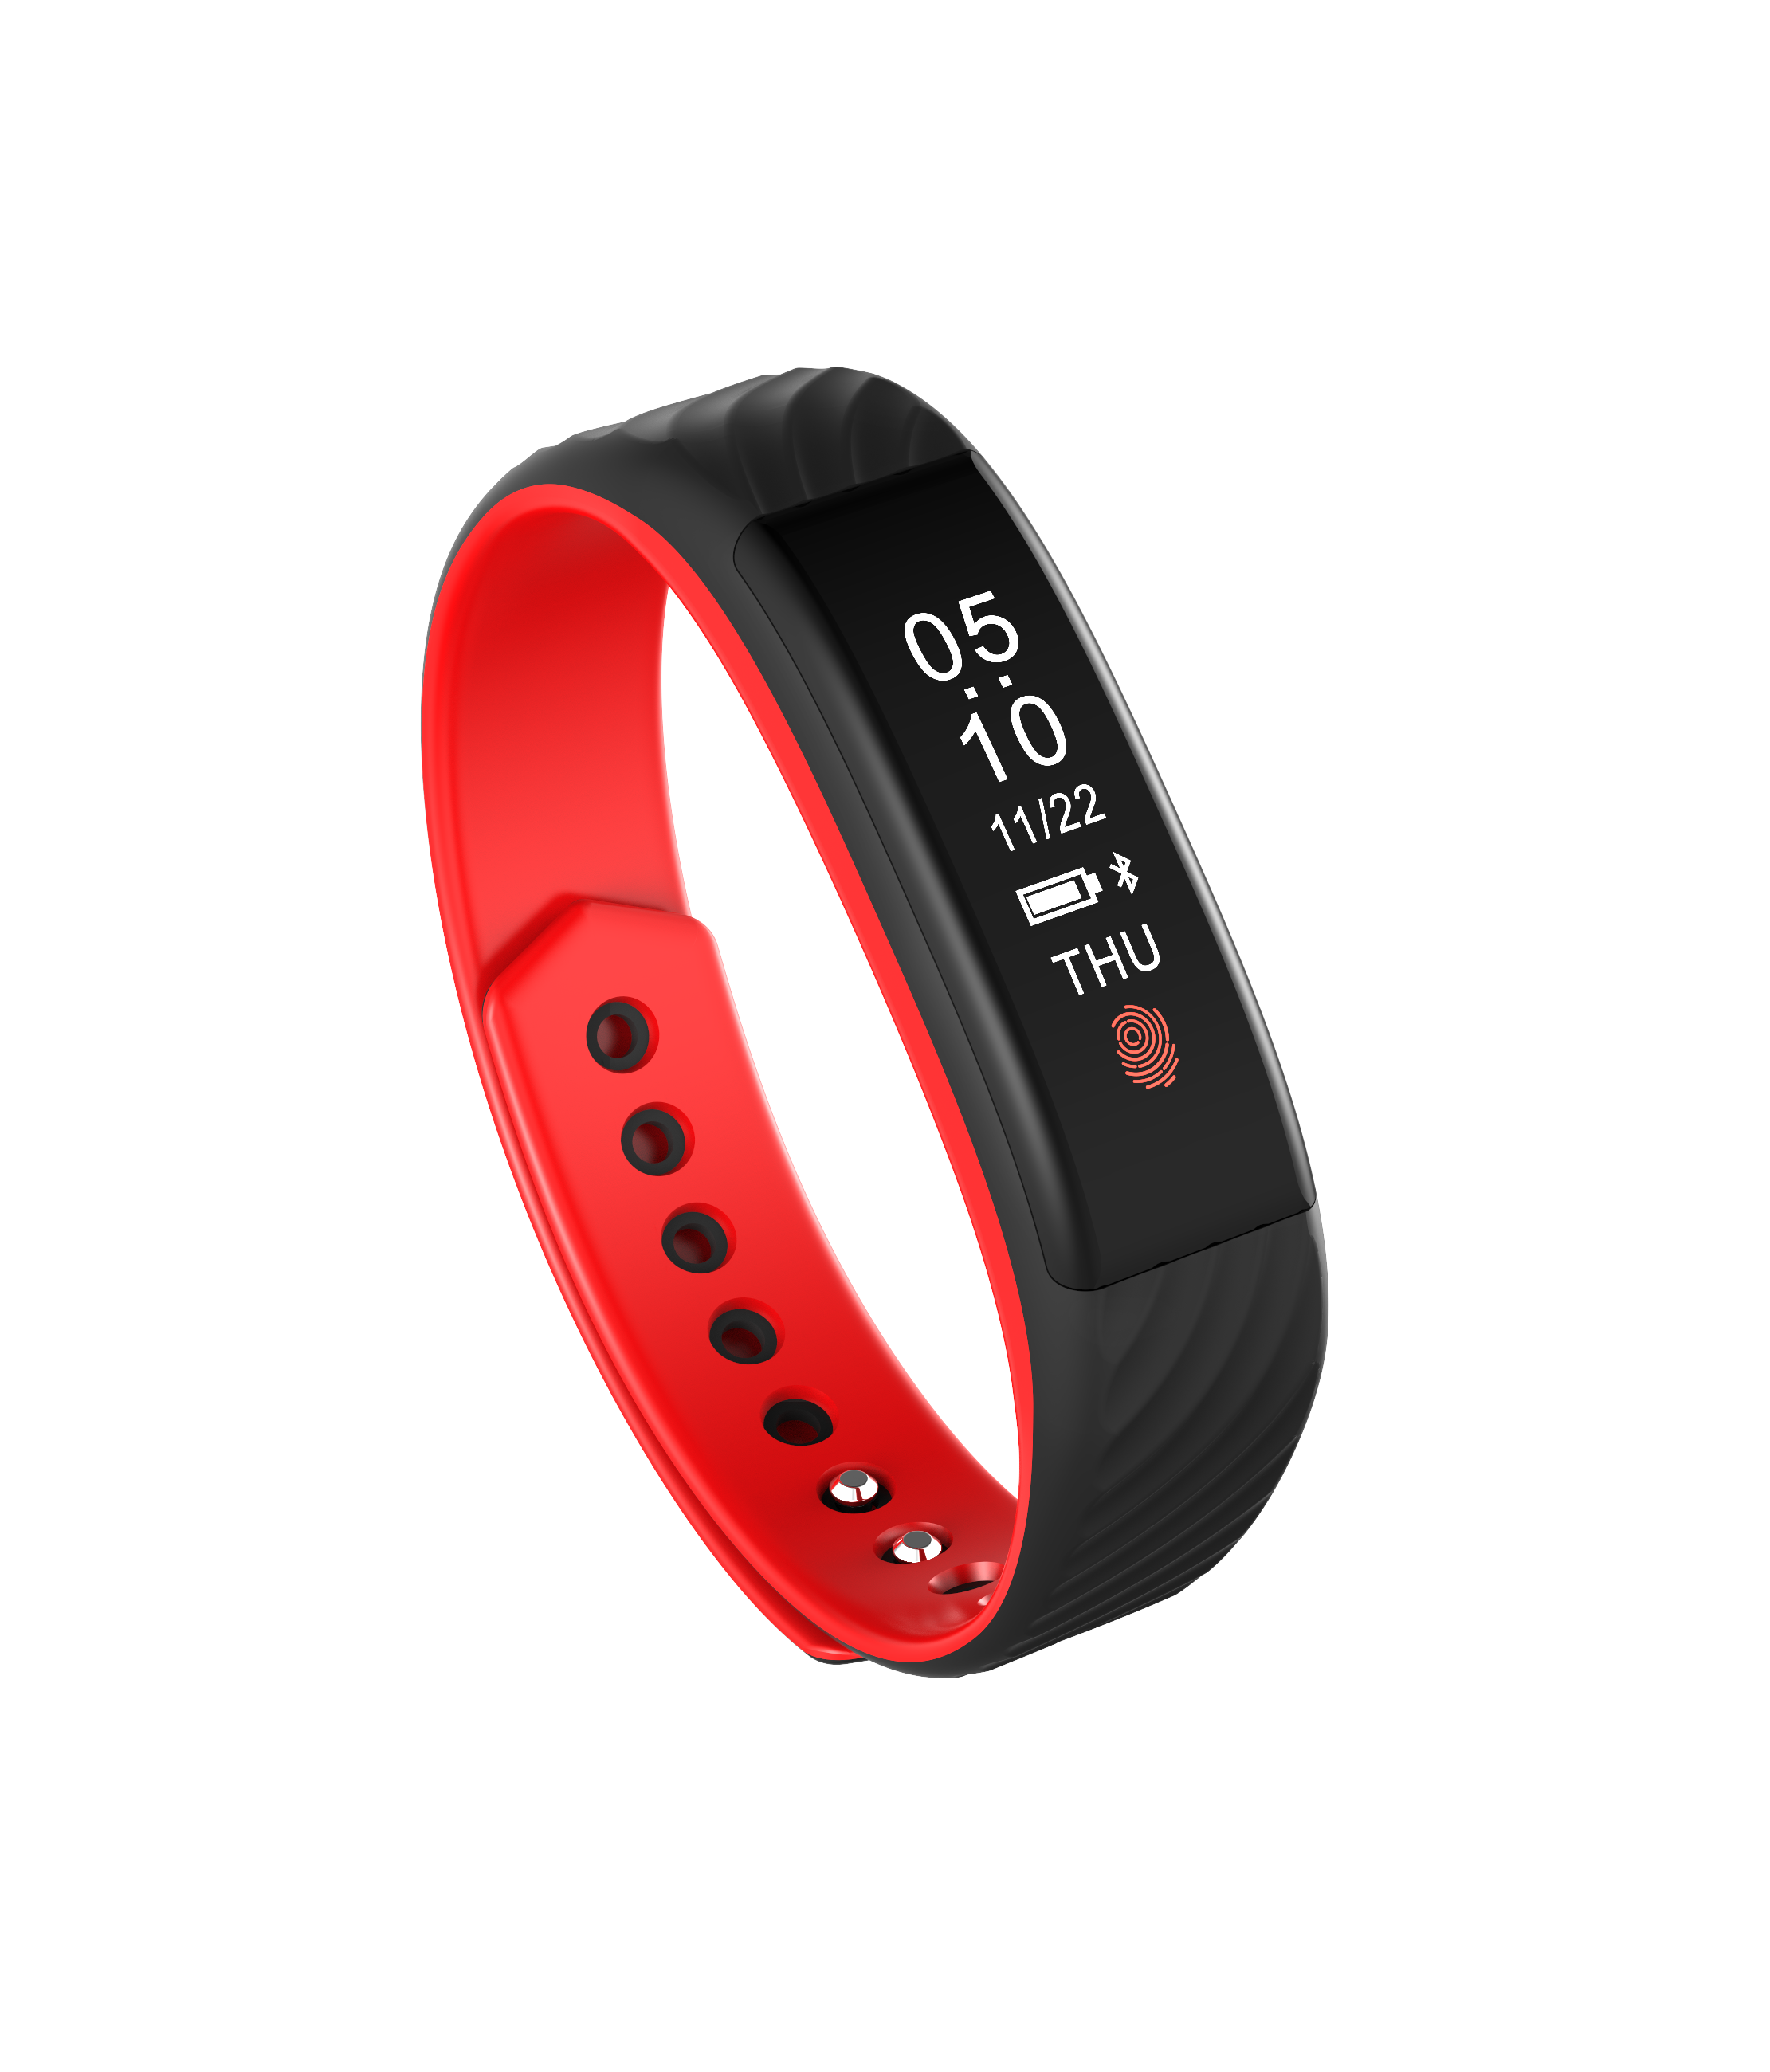 SWB807: Smart Wristband Bluetooth Heart Rate Monitor Waterproof Smart Sport Bracelet Watch - Click Image to Close